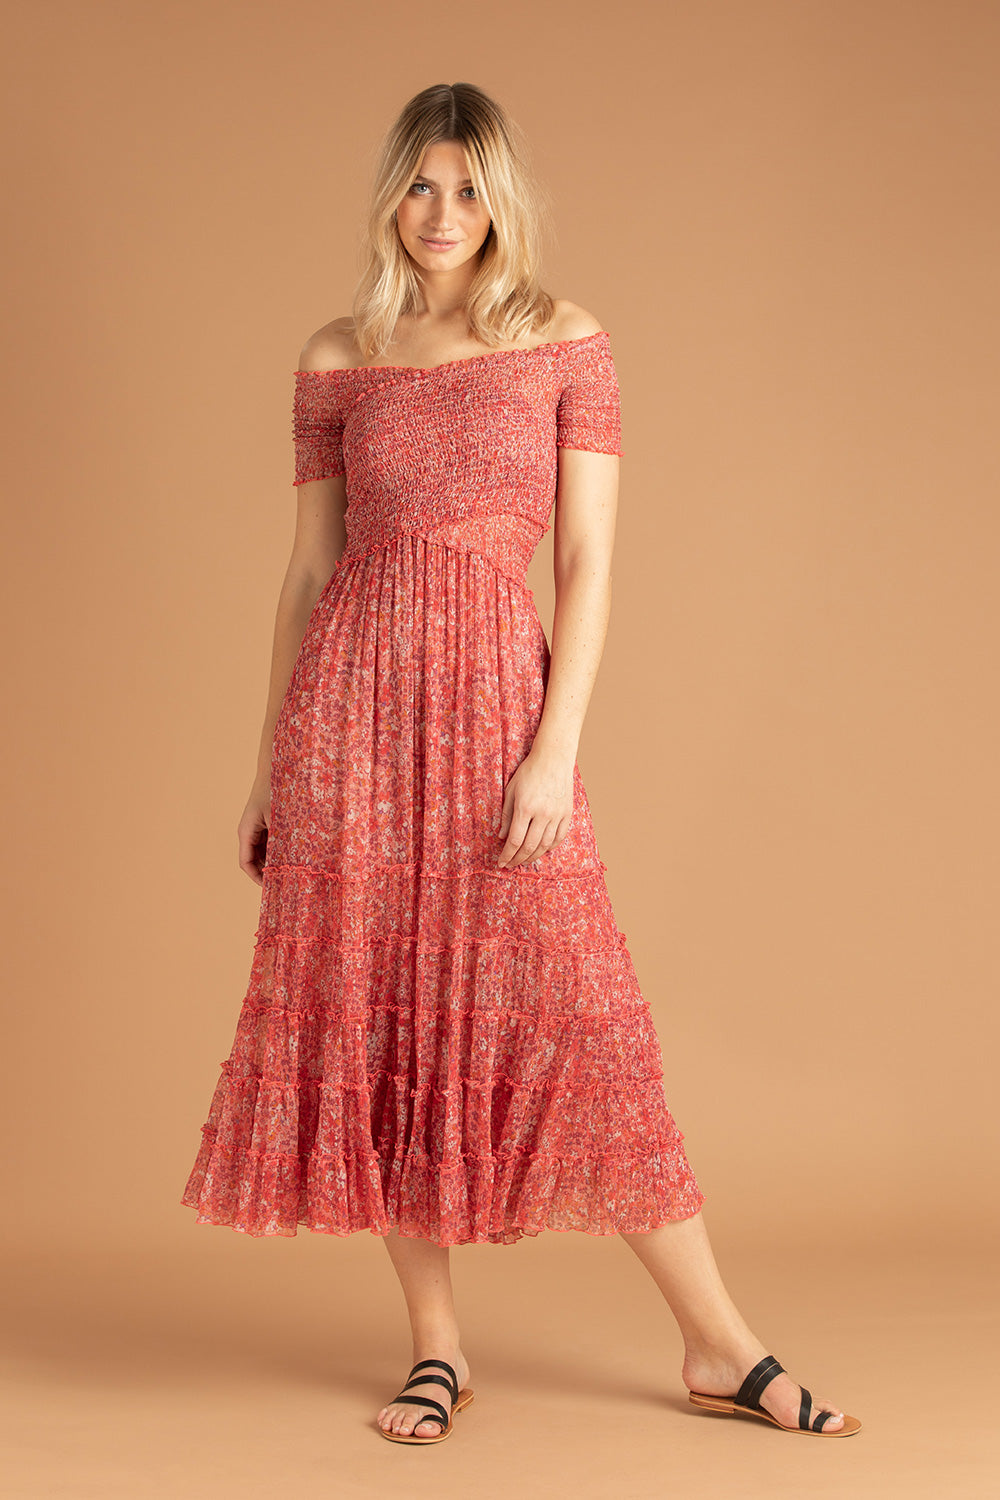 Midi Dress Soledad Off Shoulder - Pink Glory